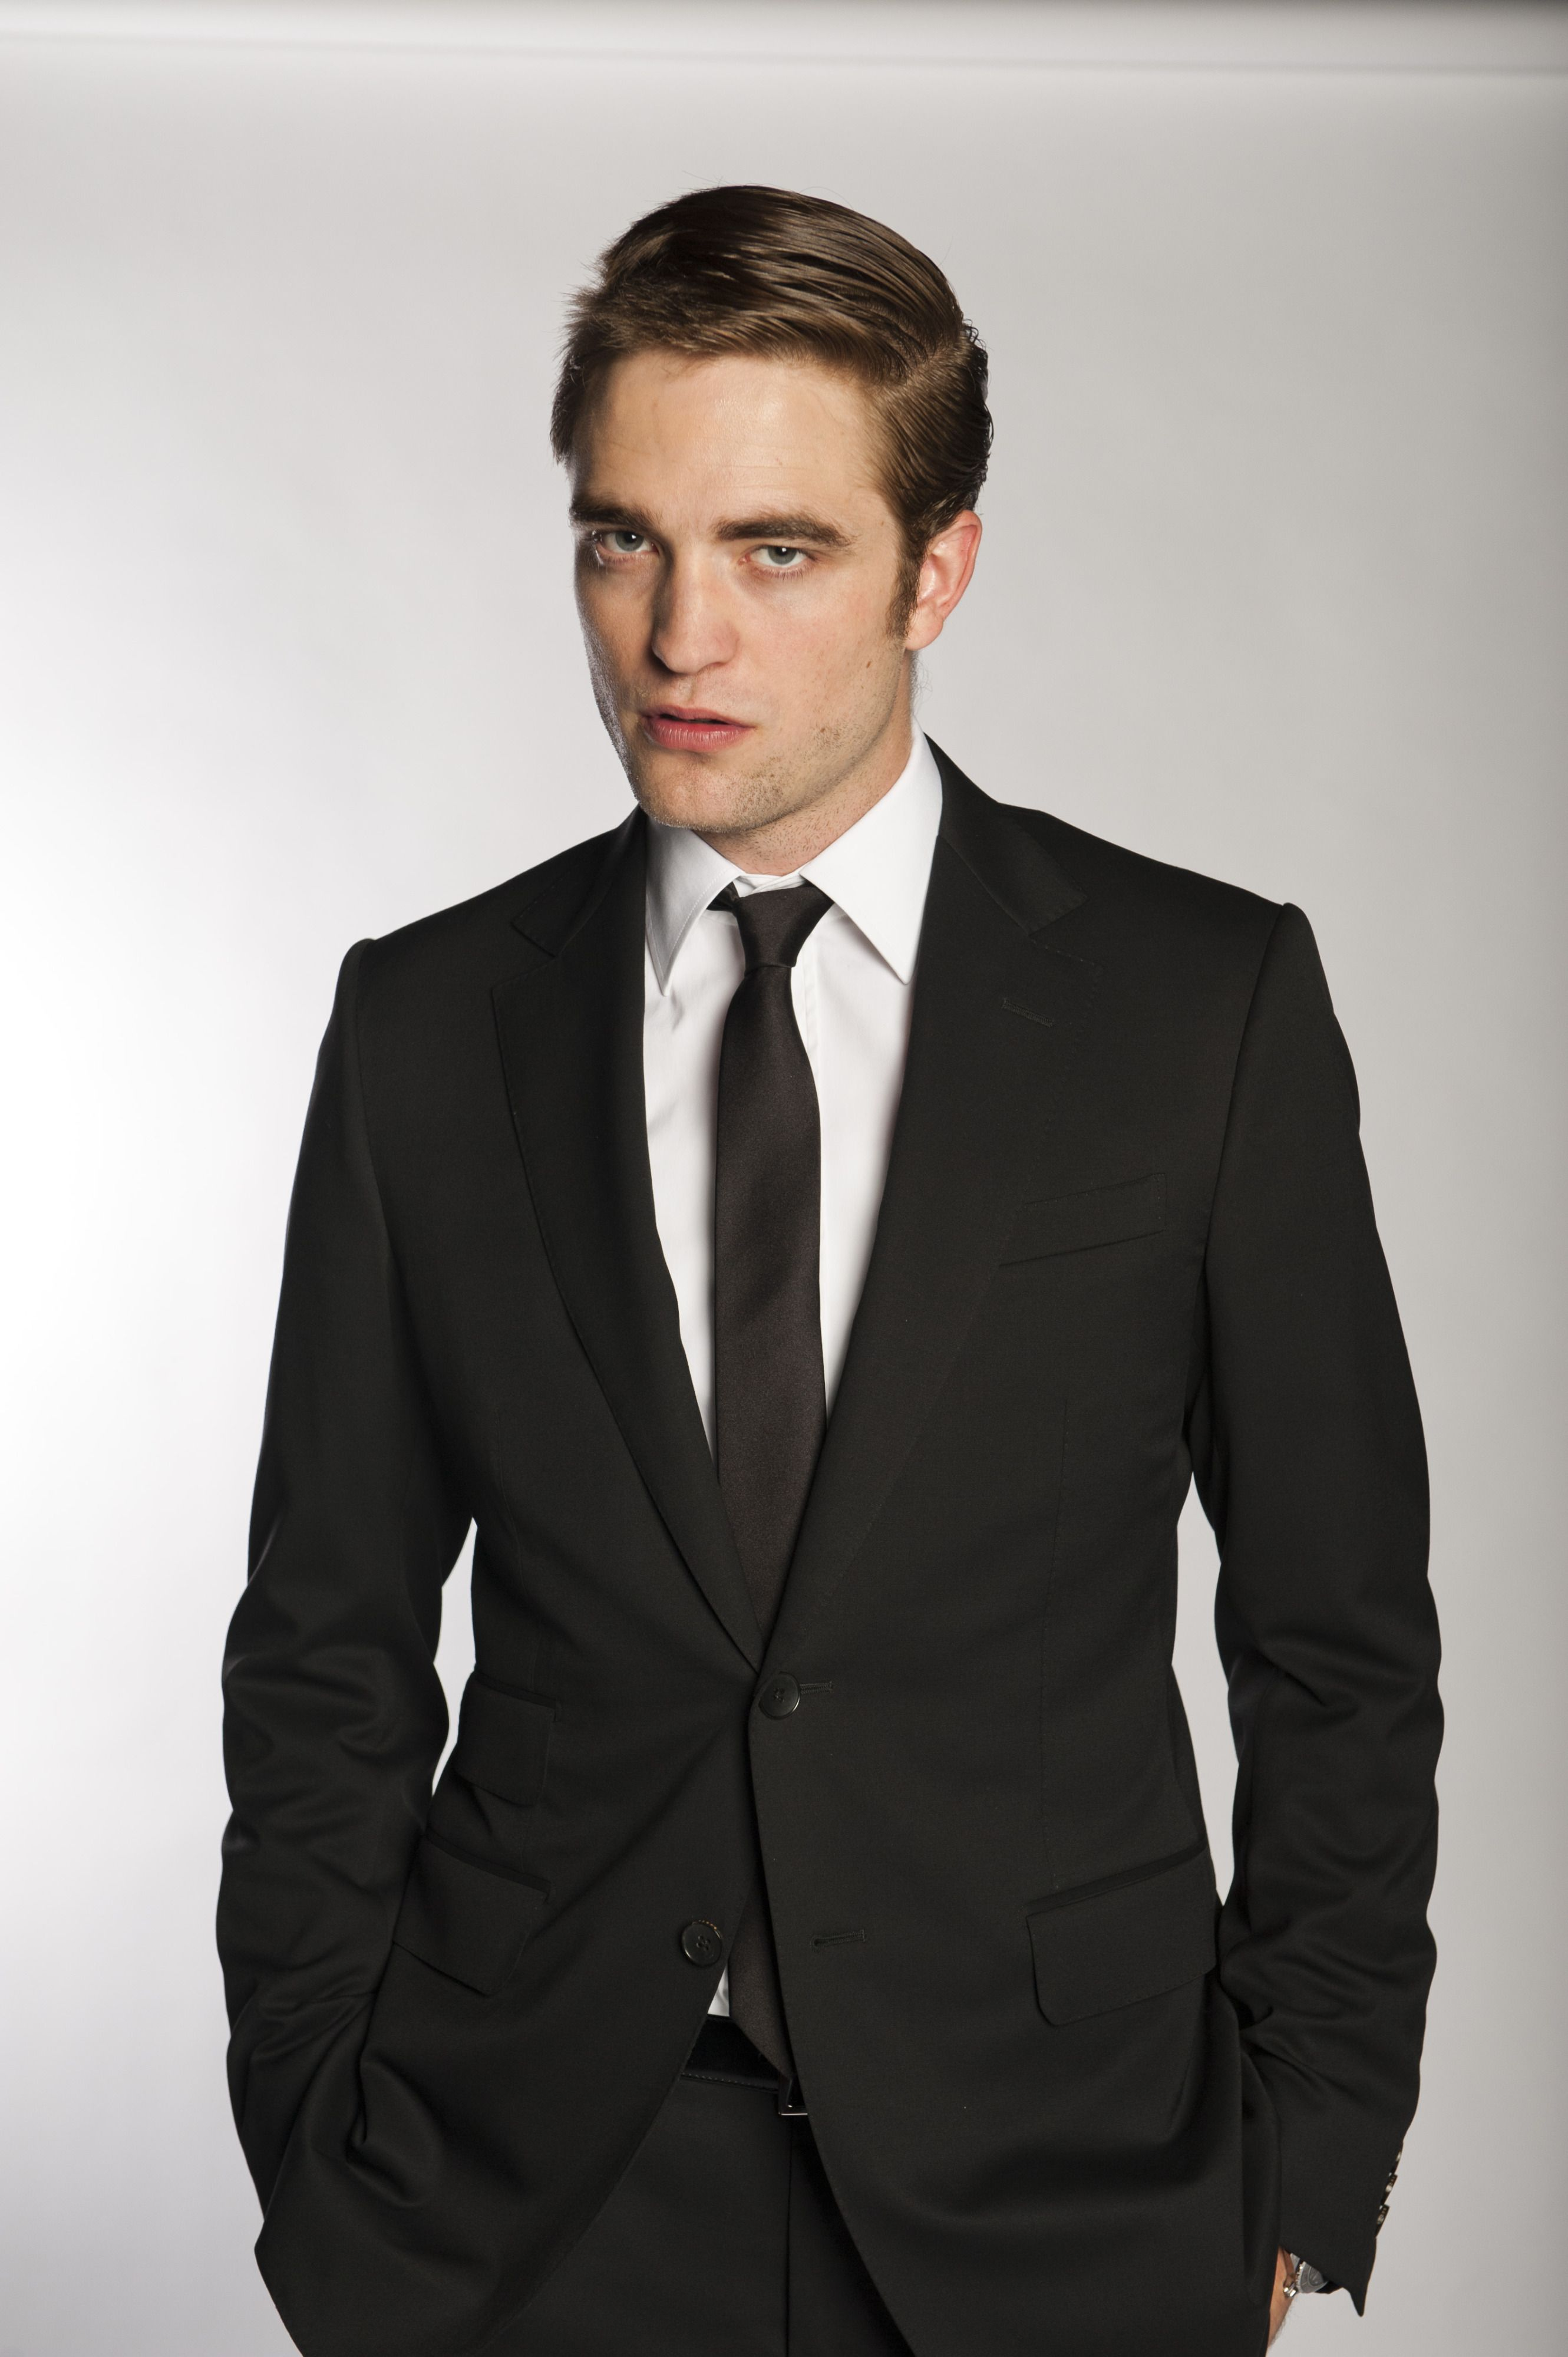 HQ photos from Day & Night magazine for Cosmopolis